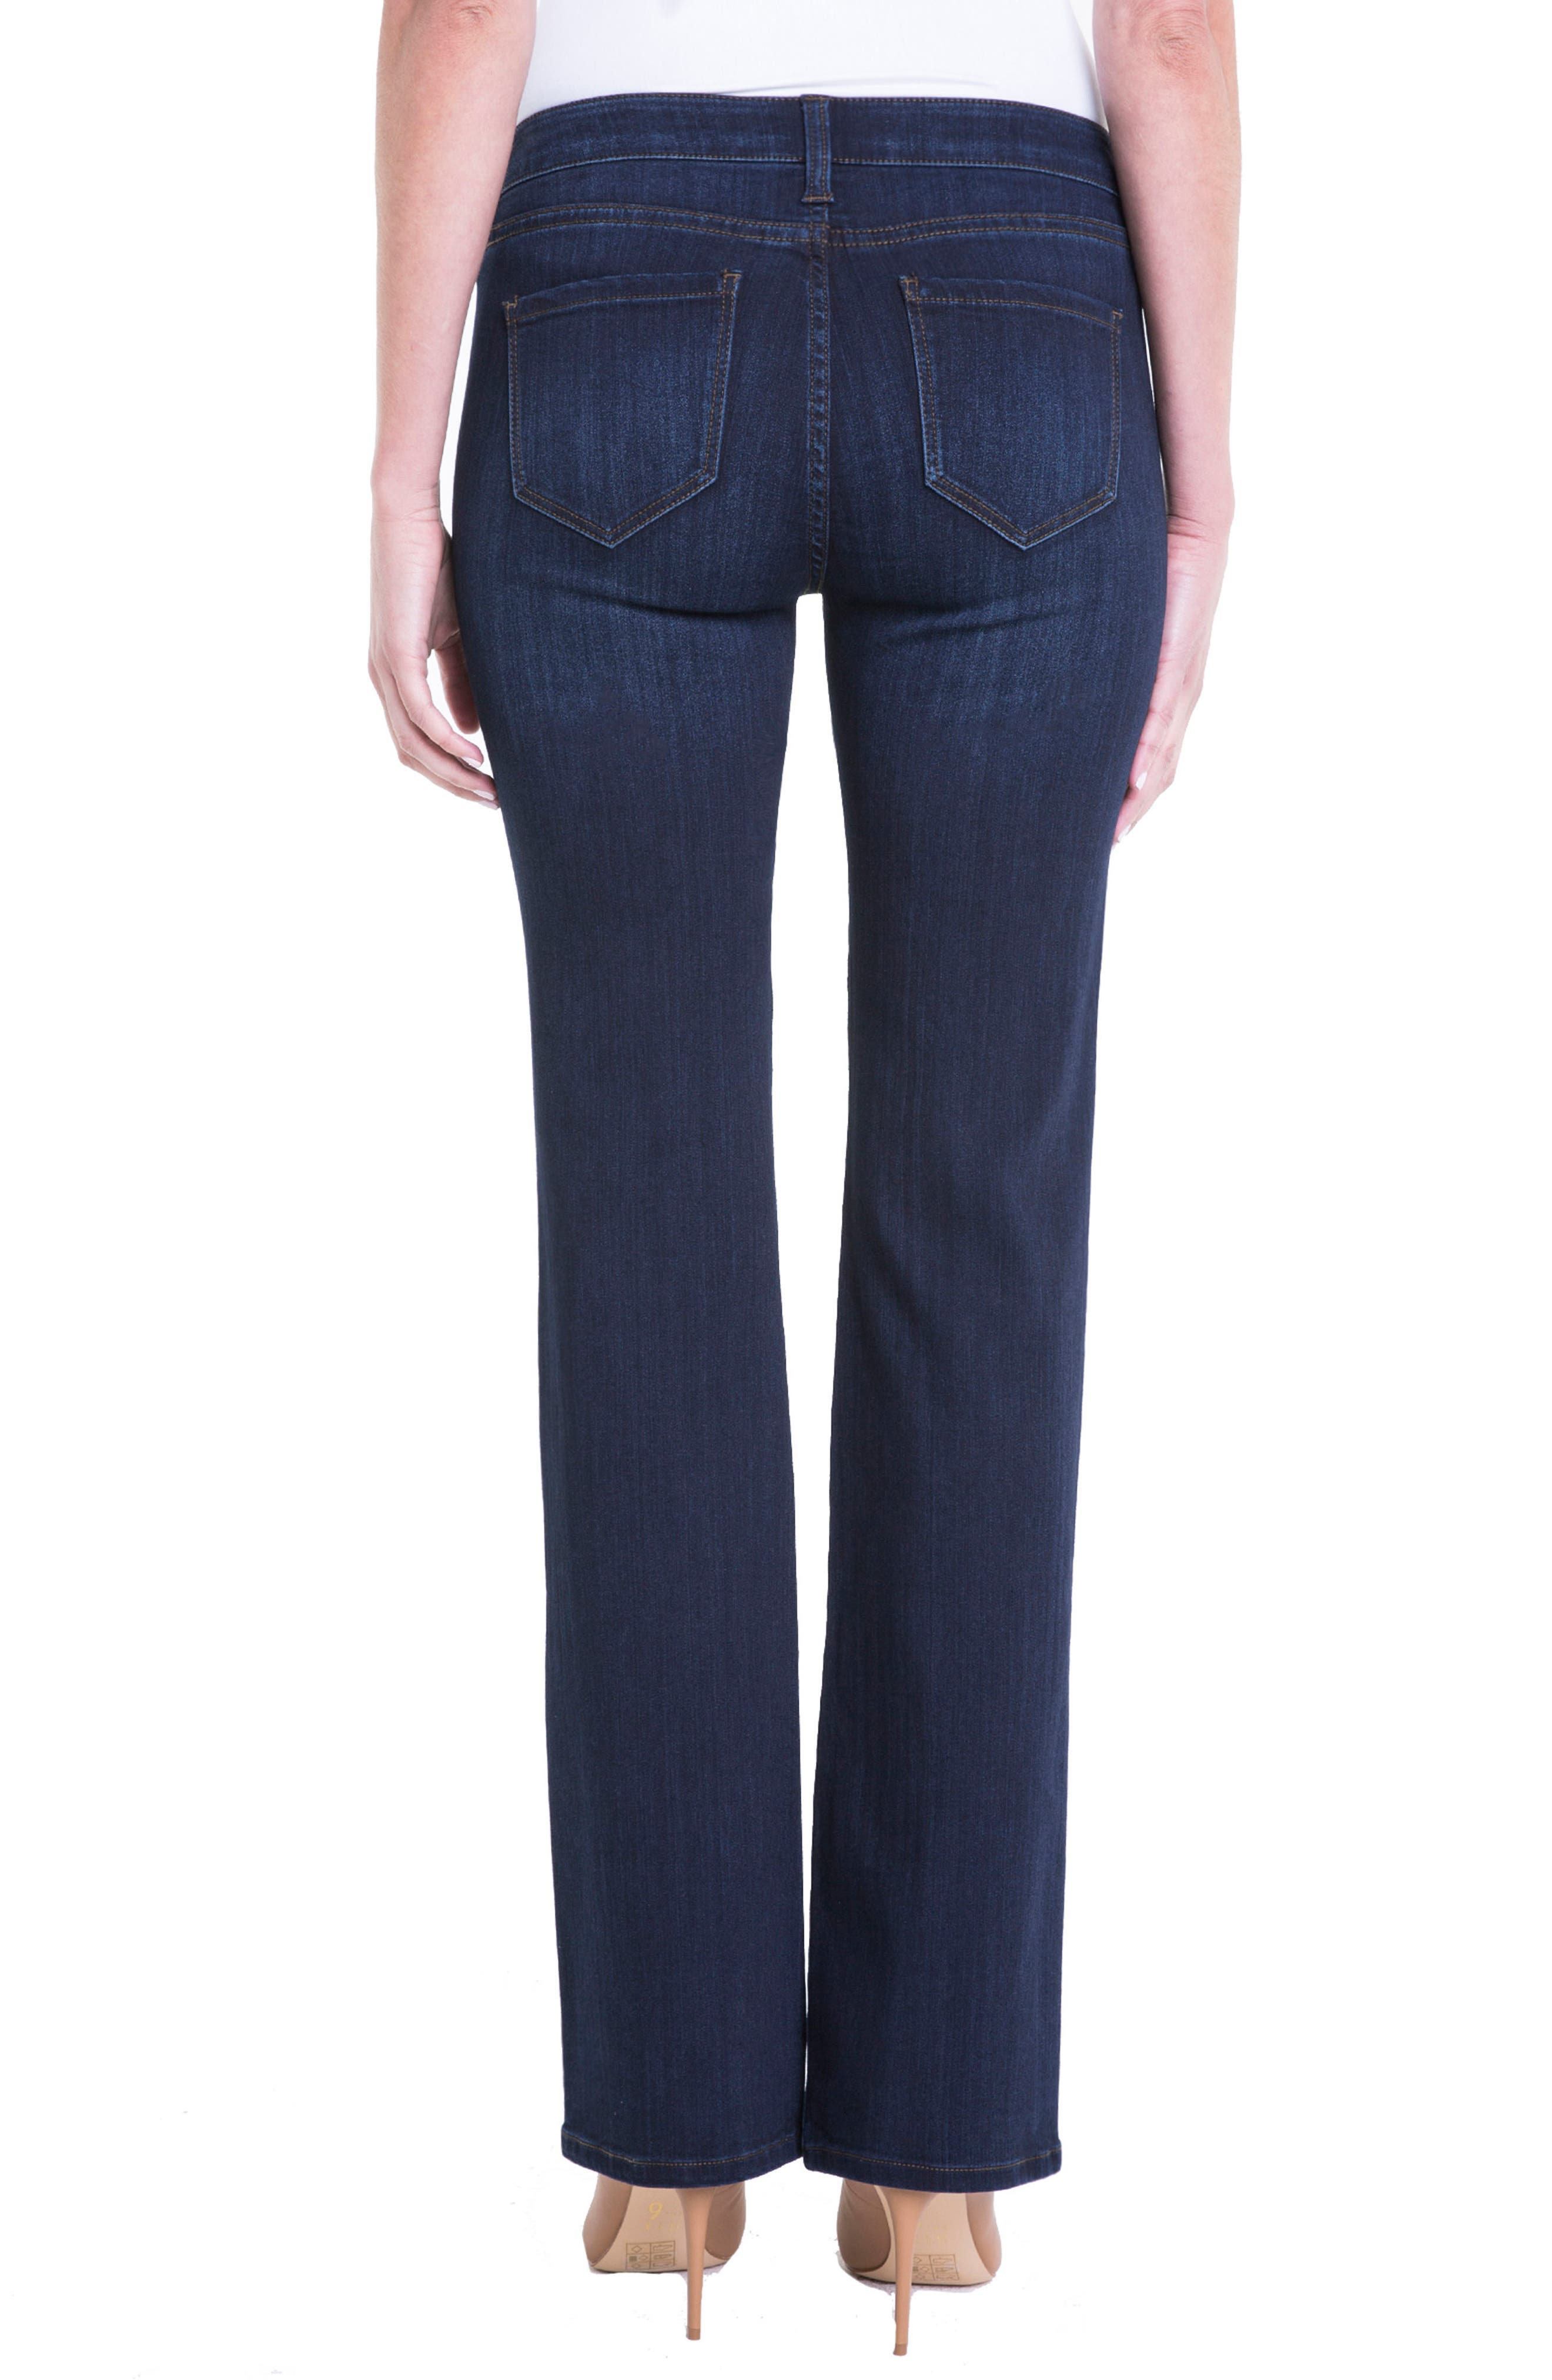 Lucy Bootcut Jeans,                             Alternate thumbnail 2, color,                             Dunmore Dark